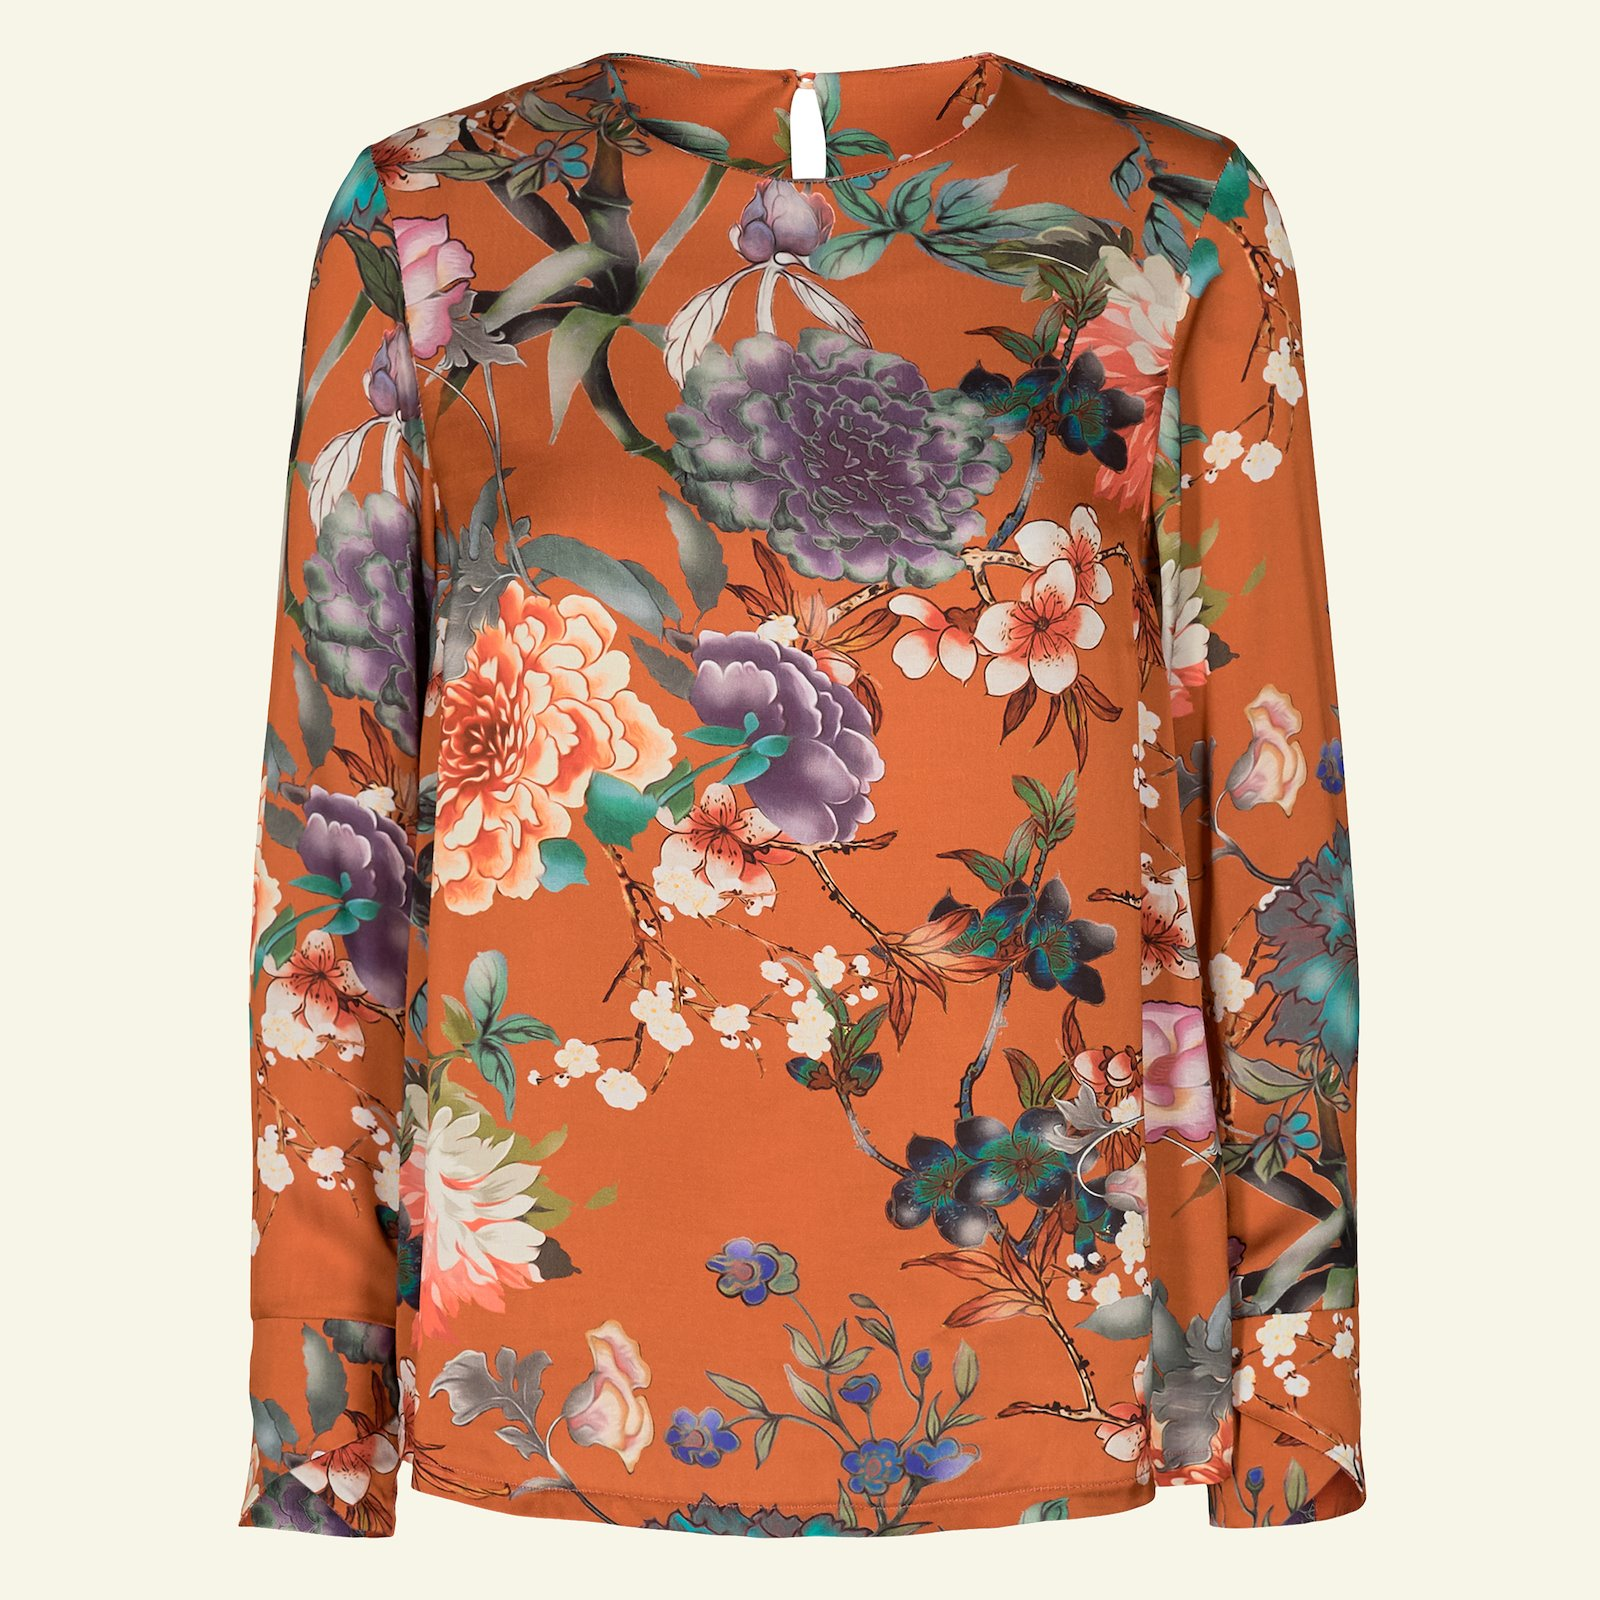 Blouse with sleeve variations, 38/10 p22067_710583_sskit